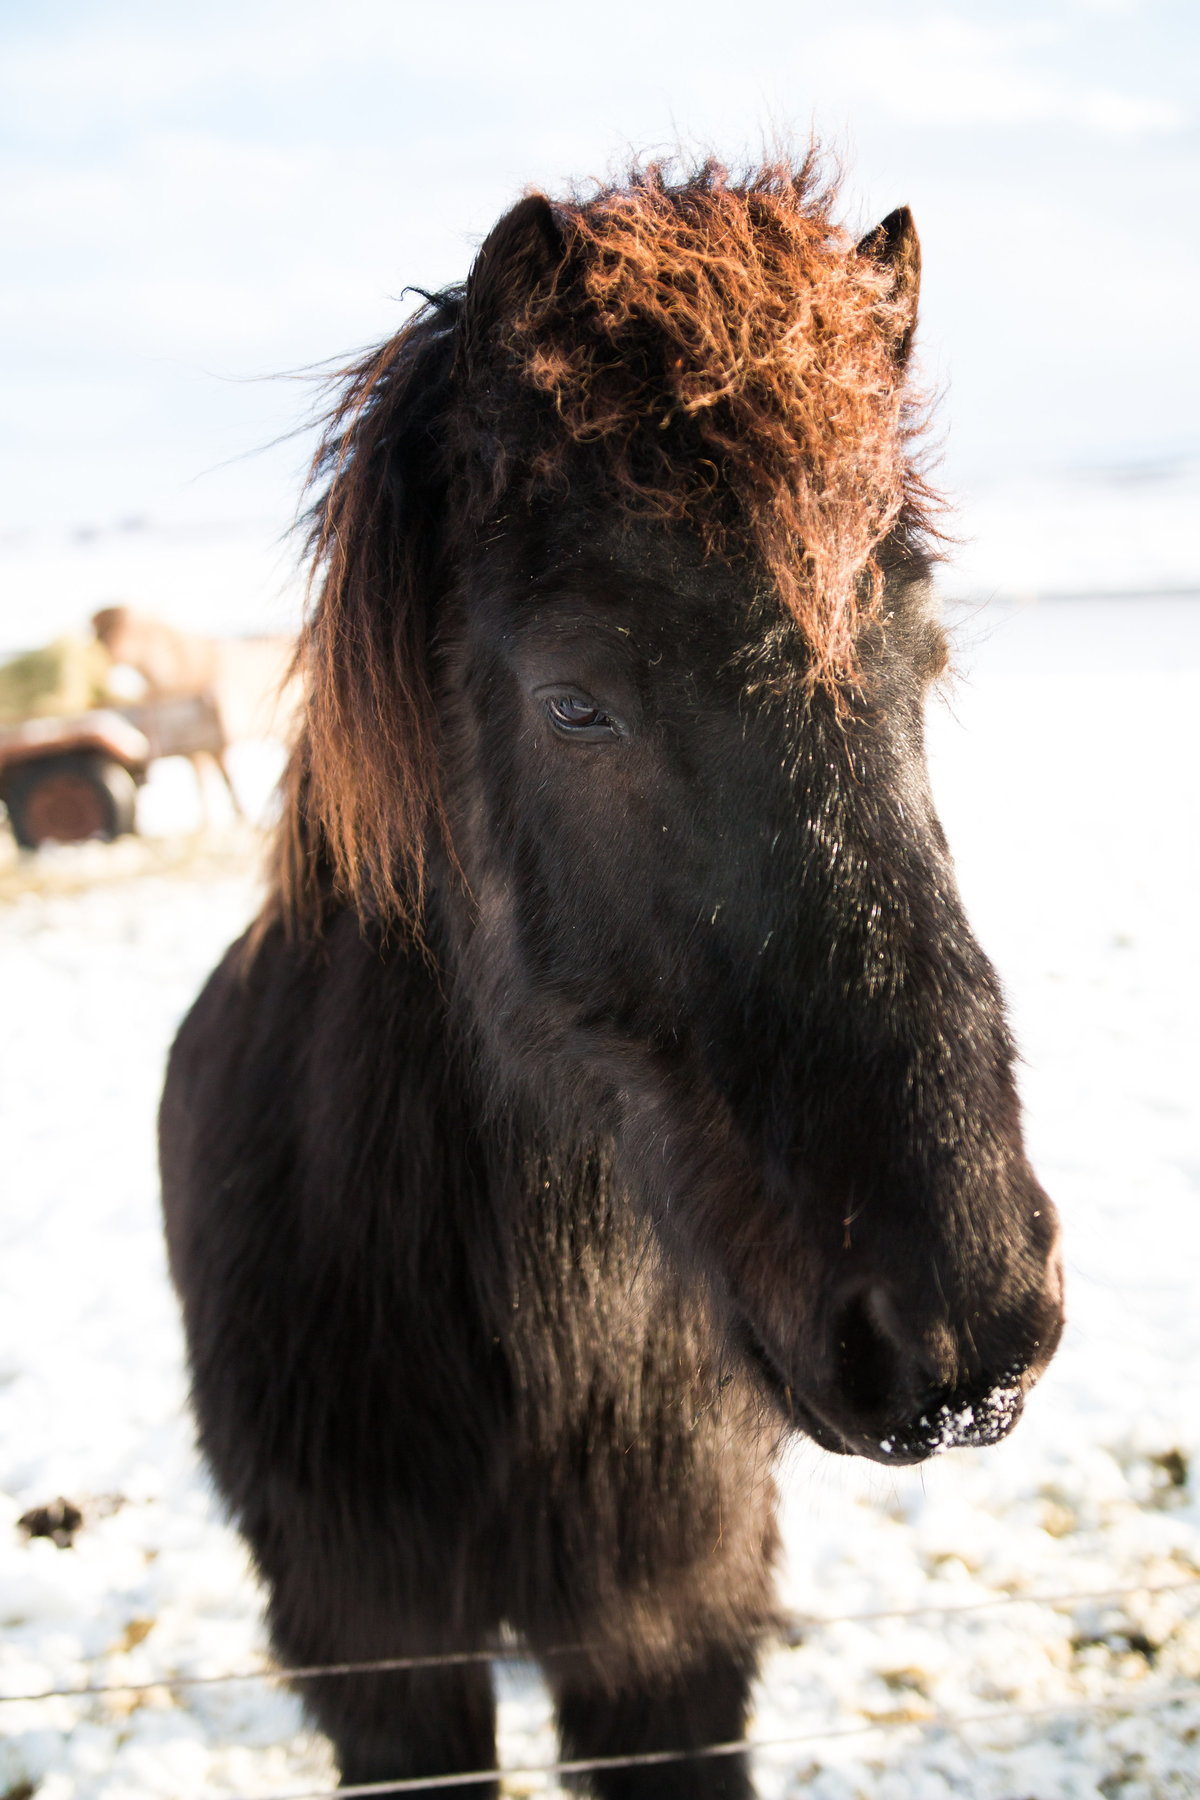 Mini pony in Iceland